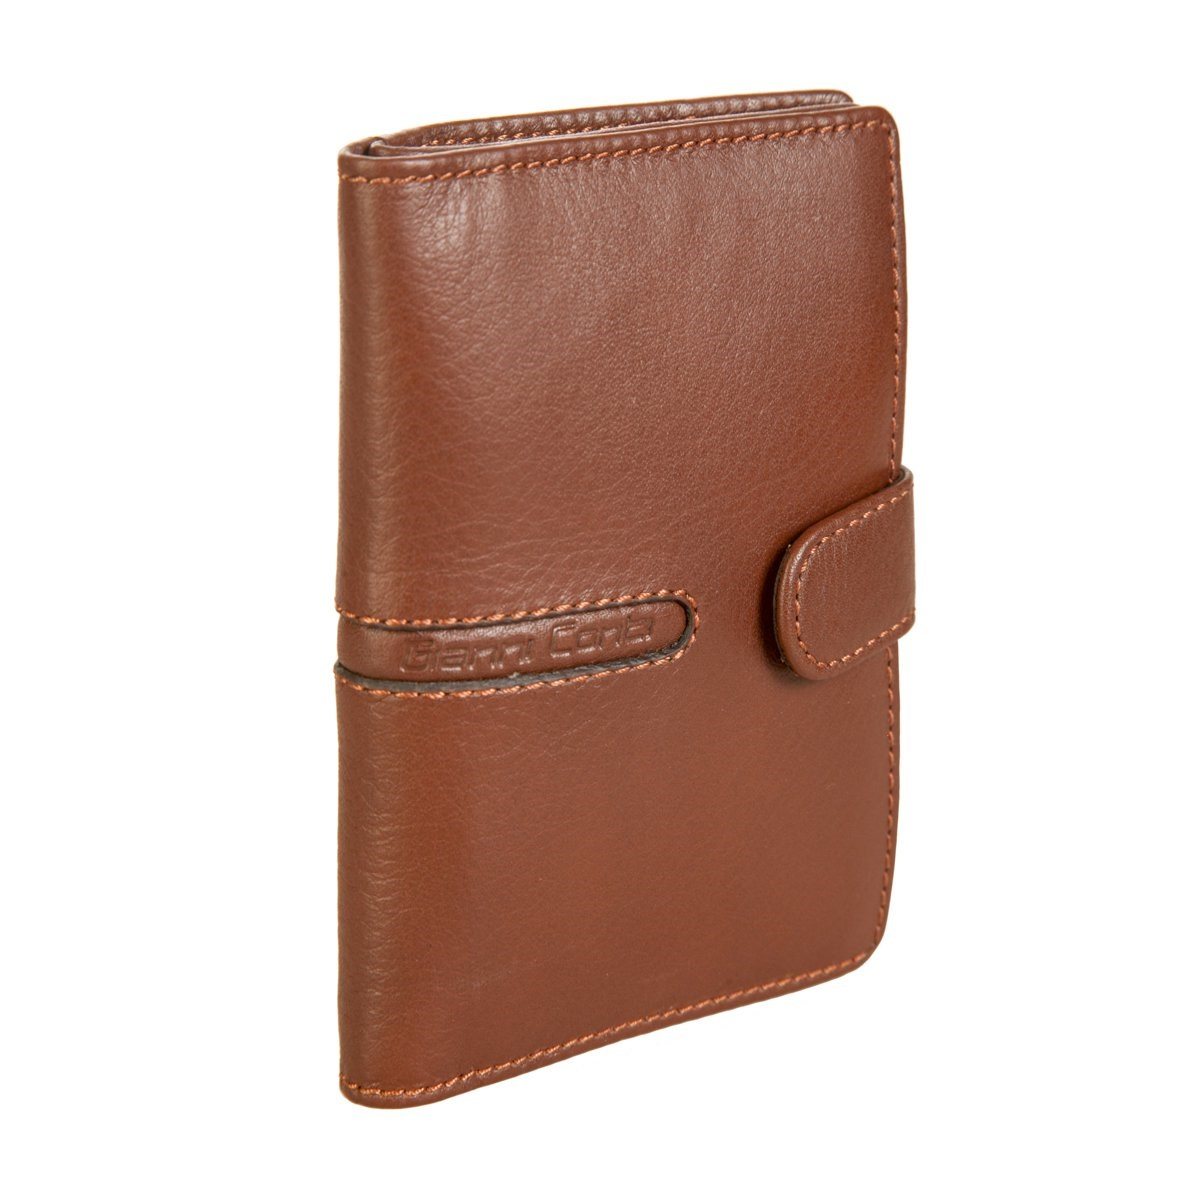 Cover for documents Gianni Conti 587458 brown-Leather leather case flip cover for doogee y300 brown